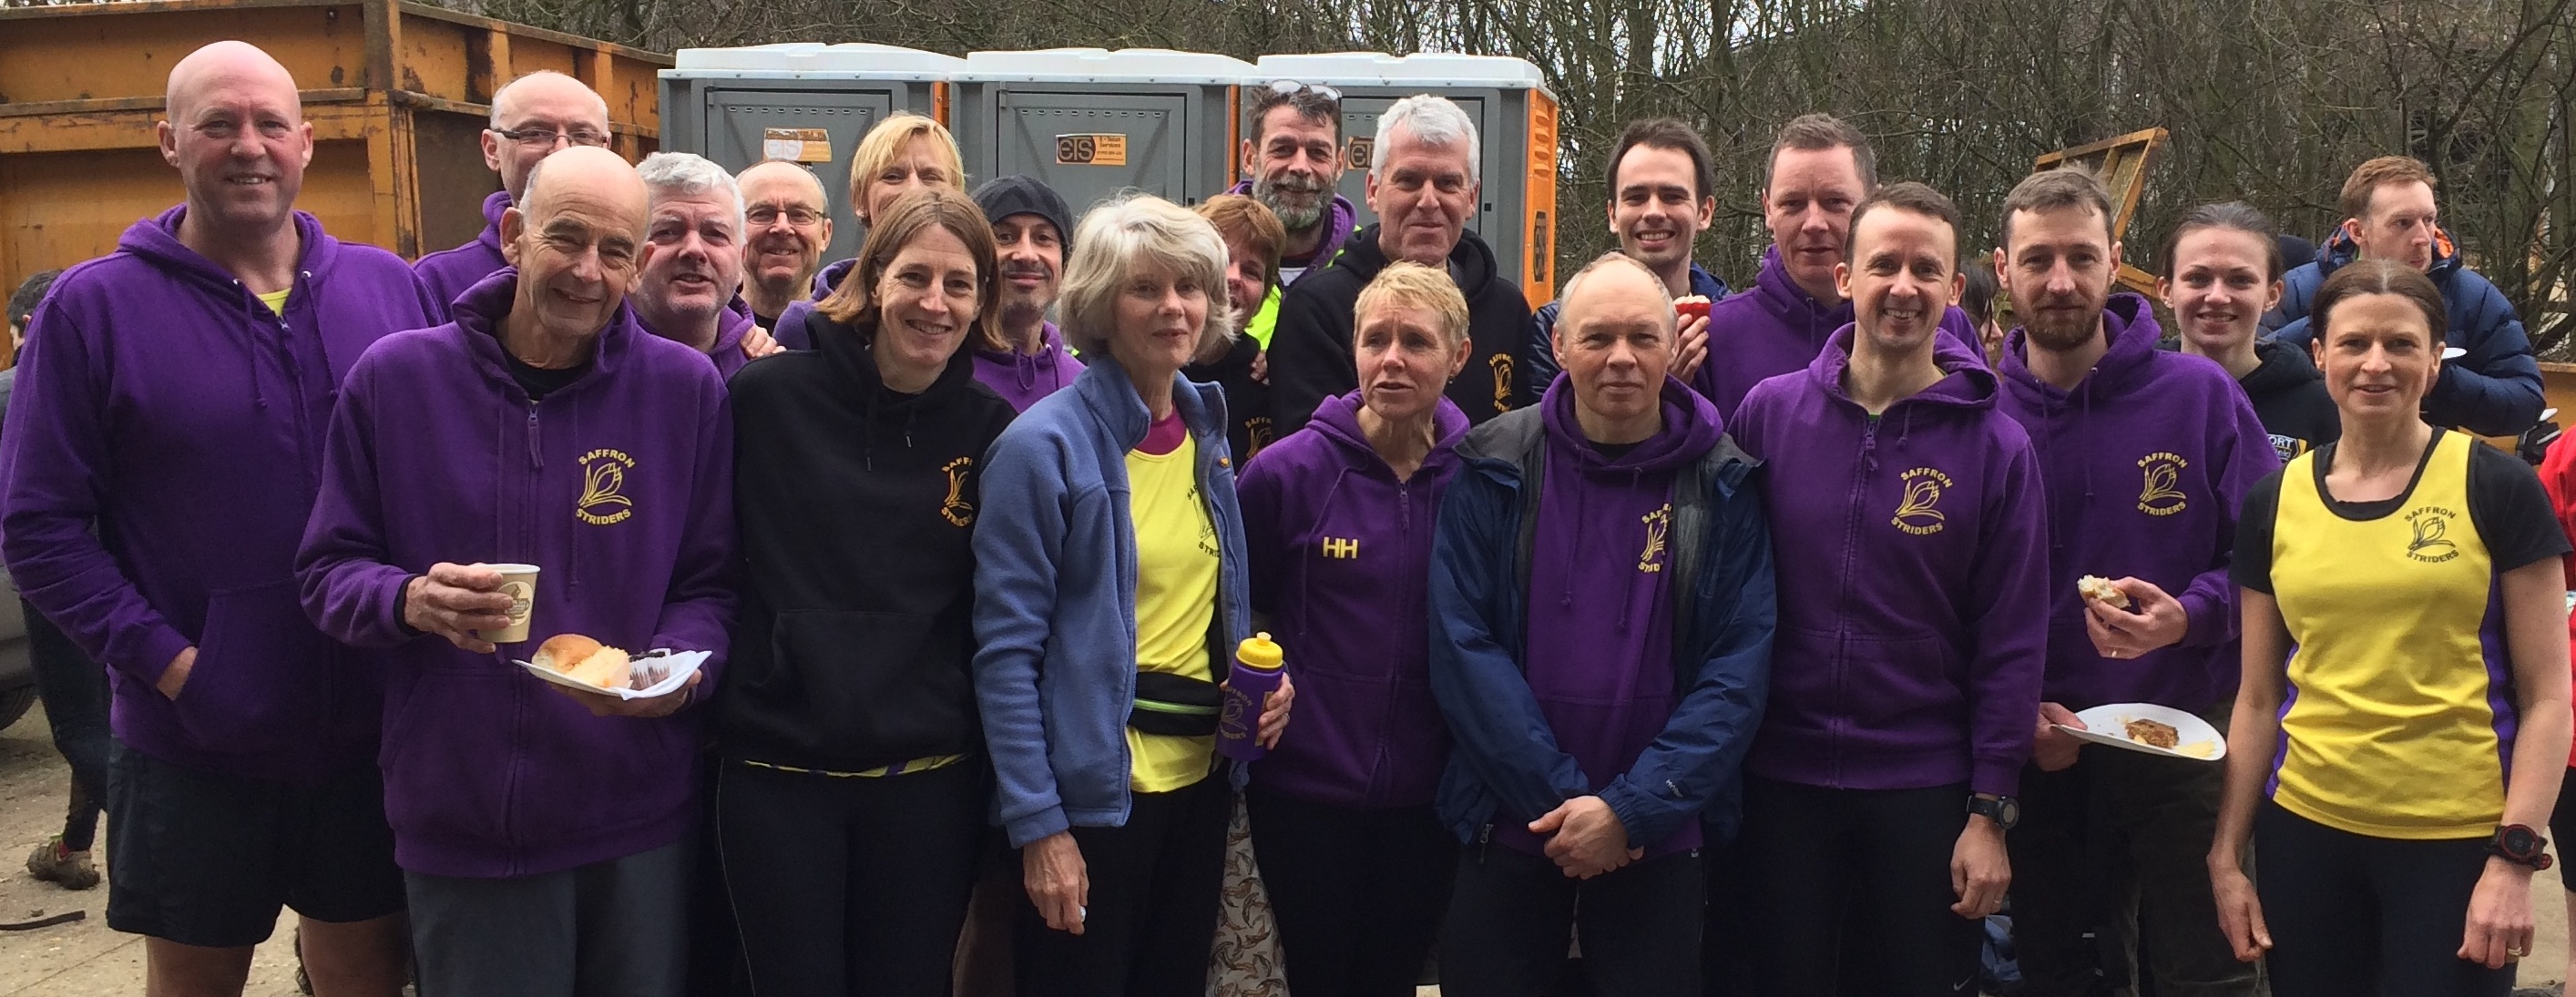 Striders at Hoddesdon xc Feb17